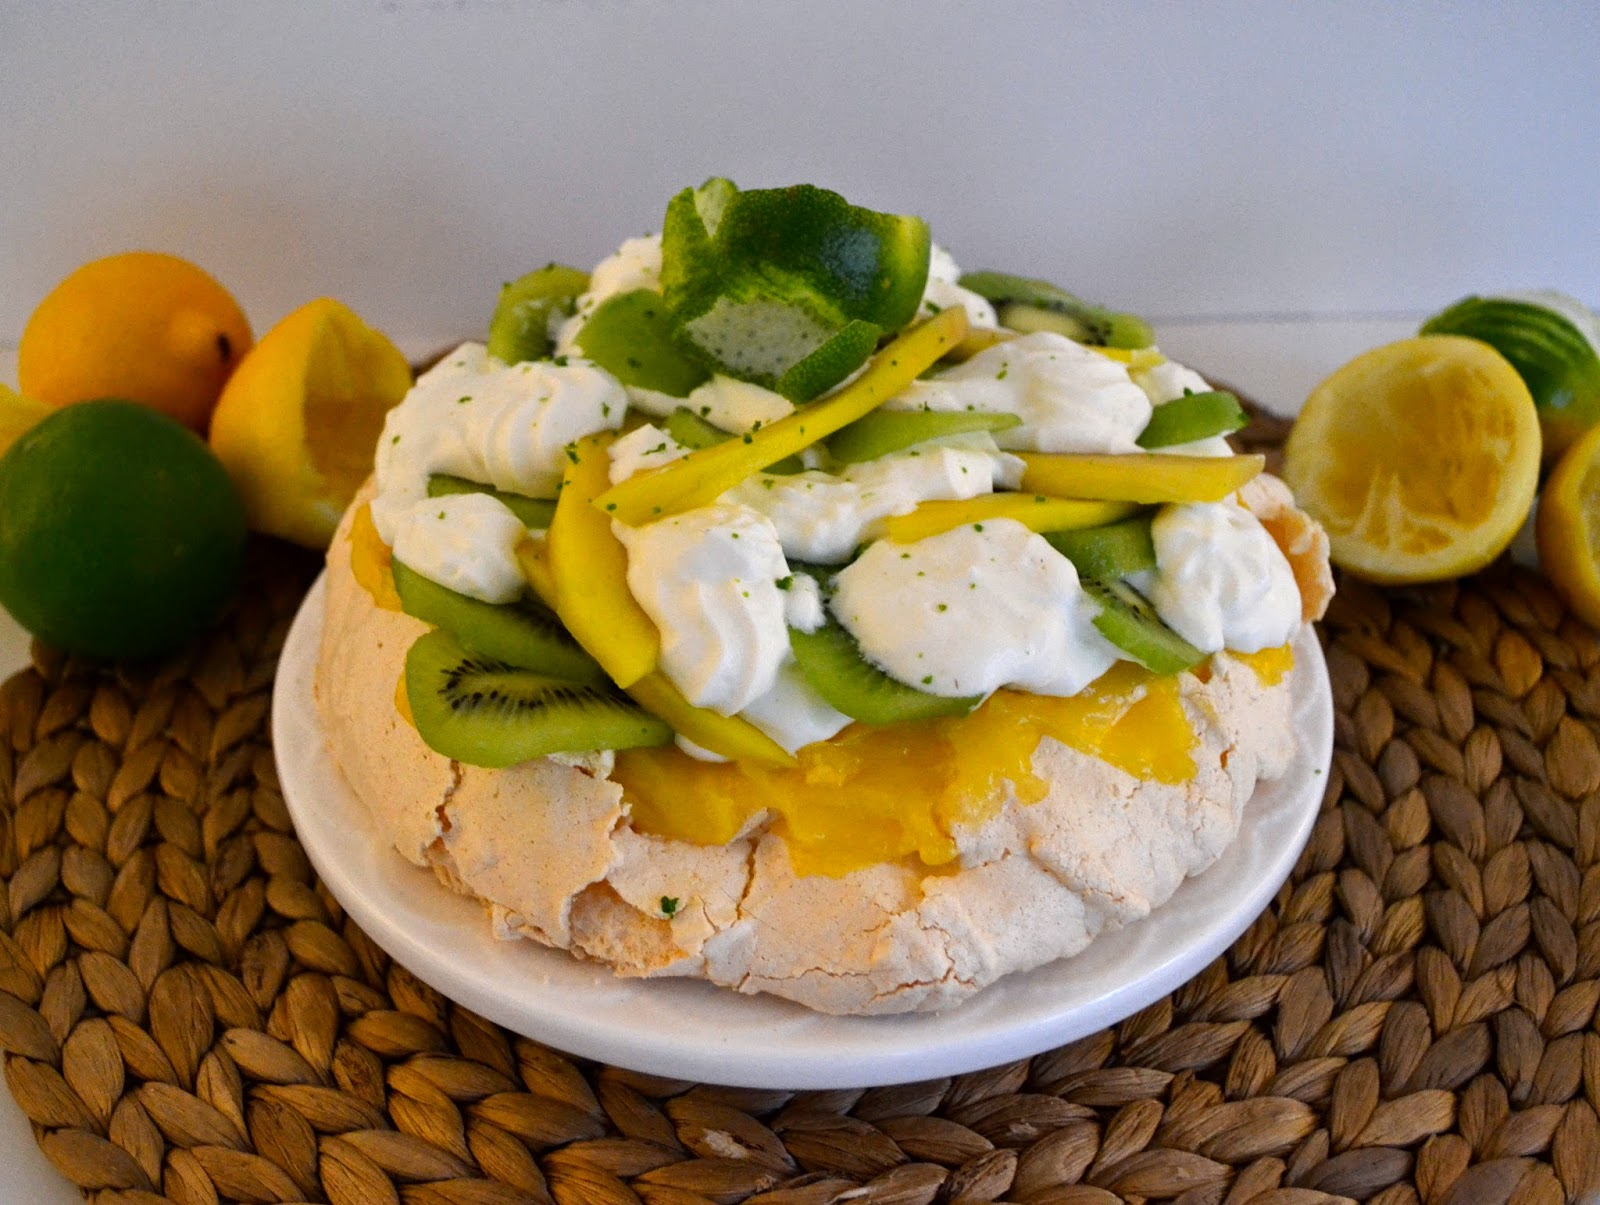 Pavlova, meringue, lemon curd, chantilly, noix de coco, fruits frais, kiwi, mangue, bataille food#20